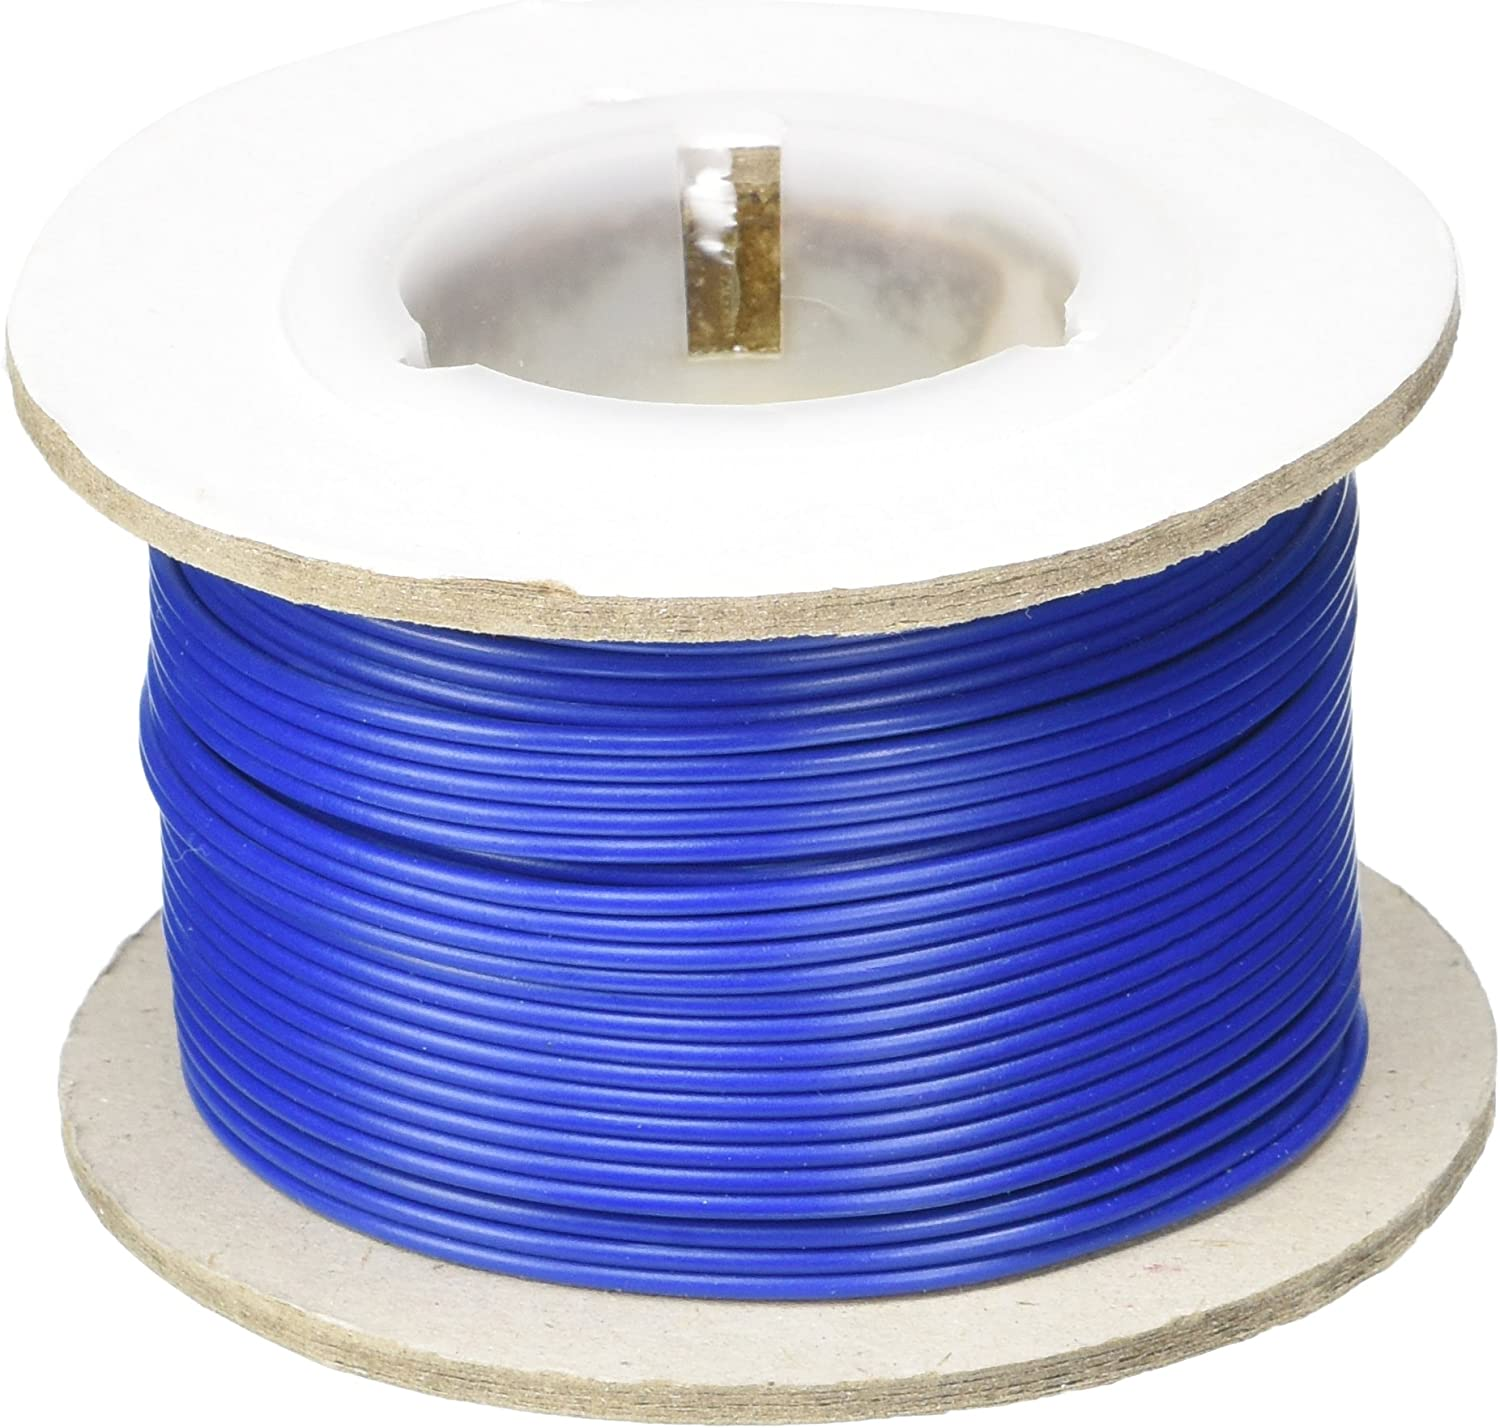 PetSafe Boundary Wire for Electric Dog and Cat Containment Fences - Durable 16 Gauge and 20 Gauge Options